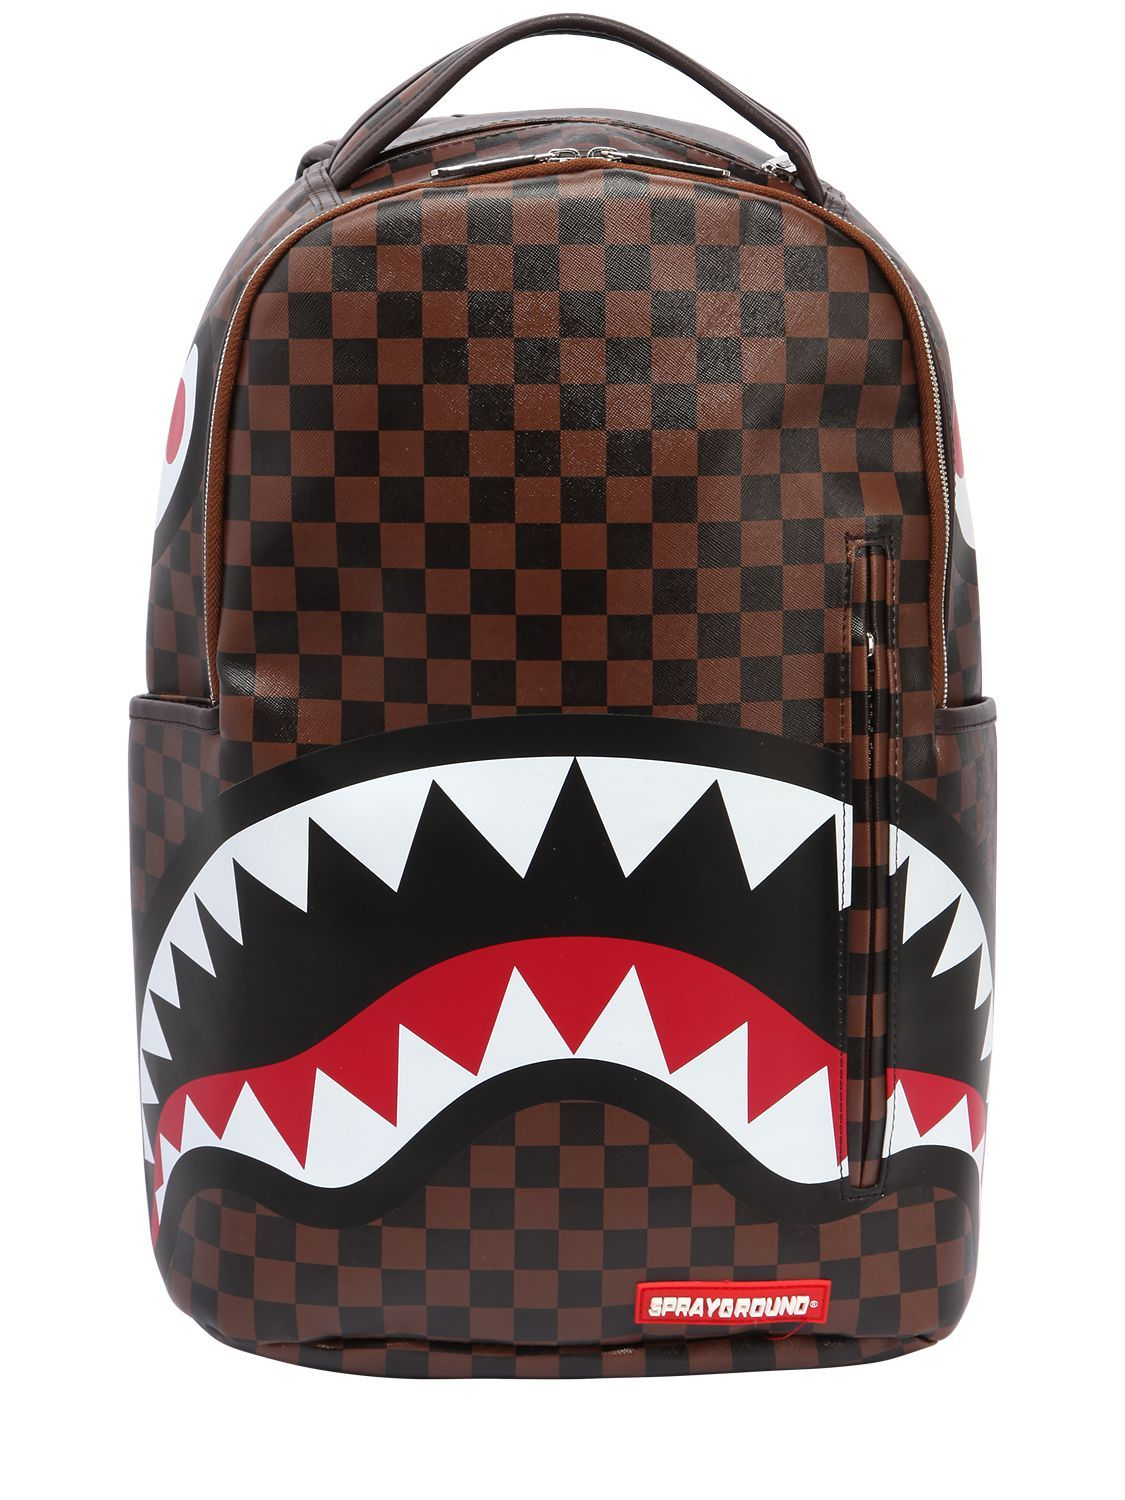 Sprayground Shark In Paris Faux Leather Backpack Bags Backpacks